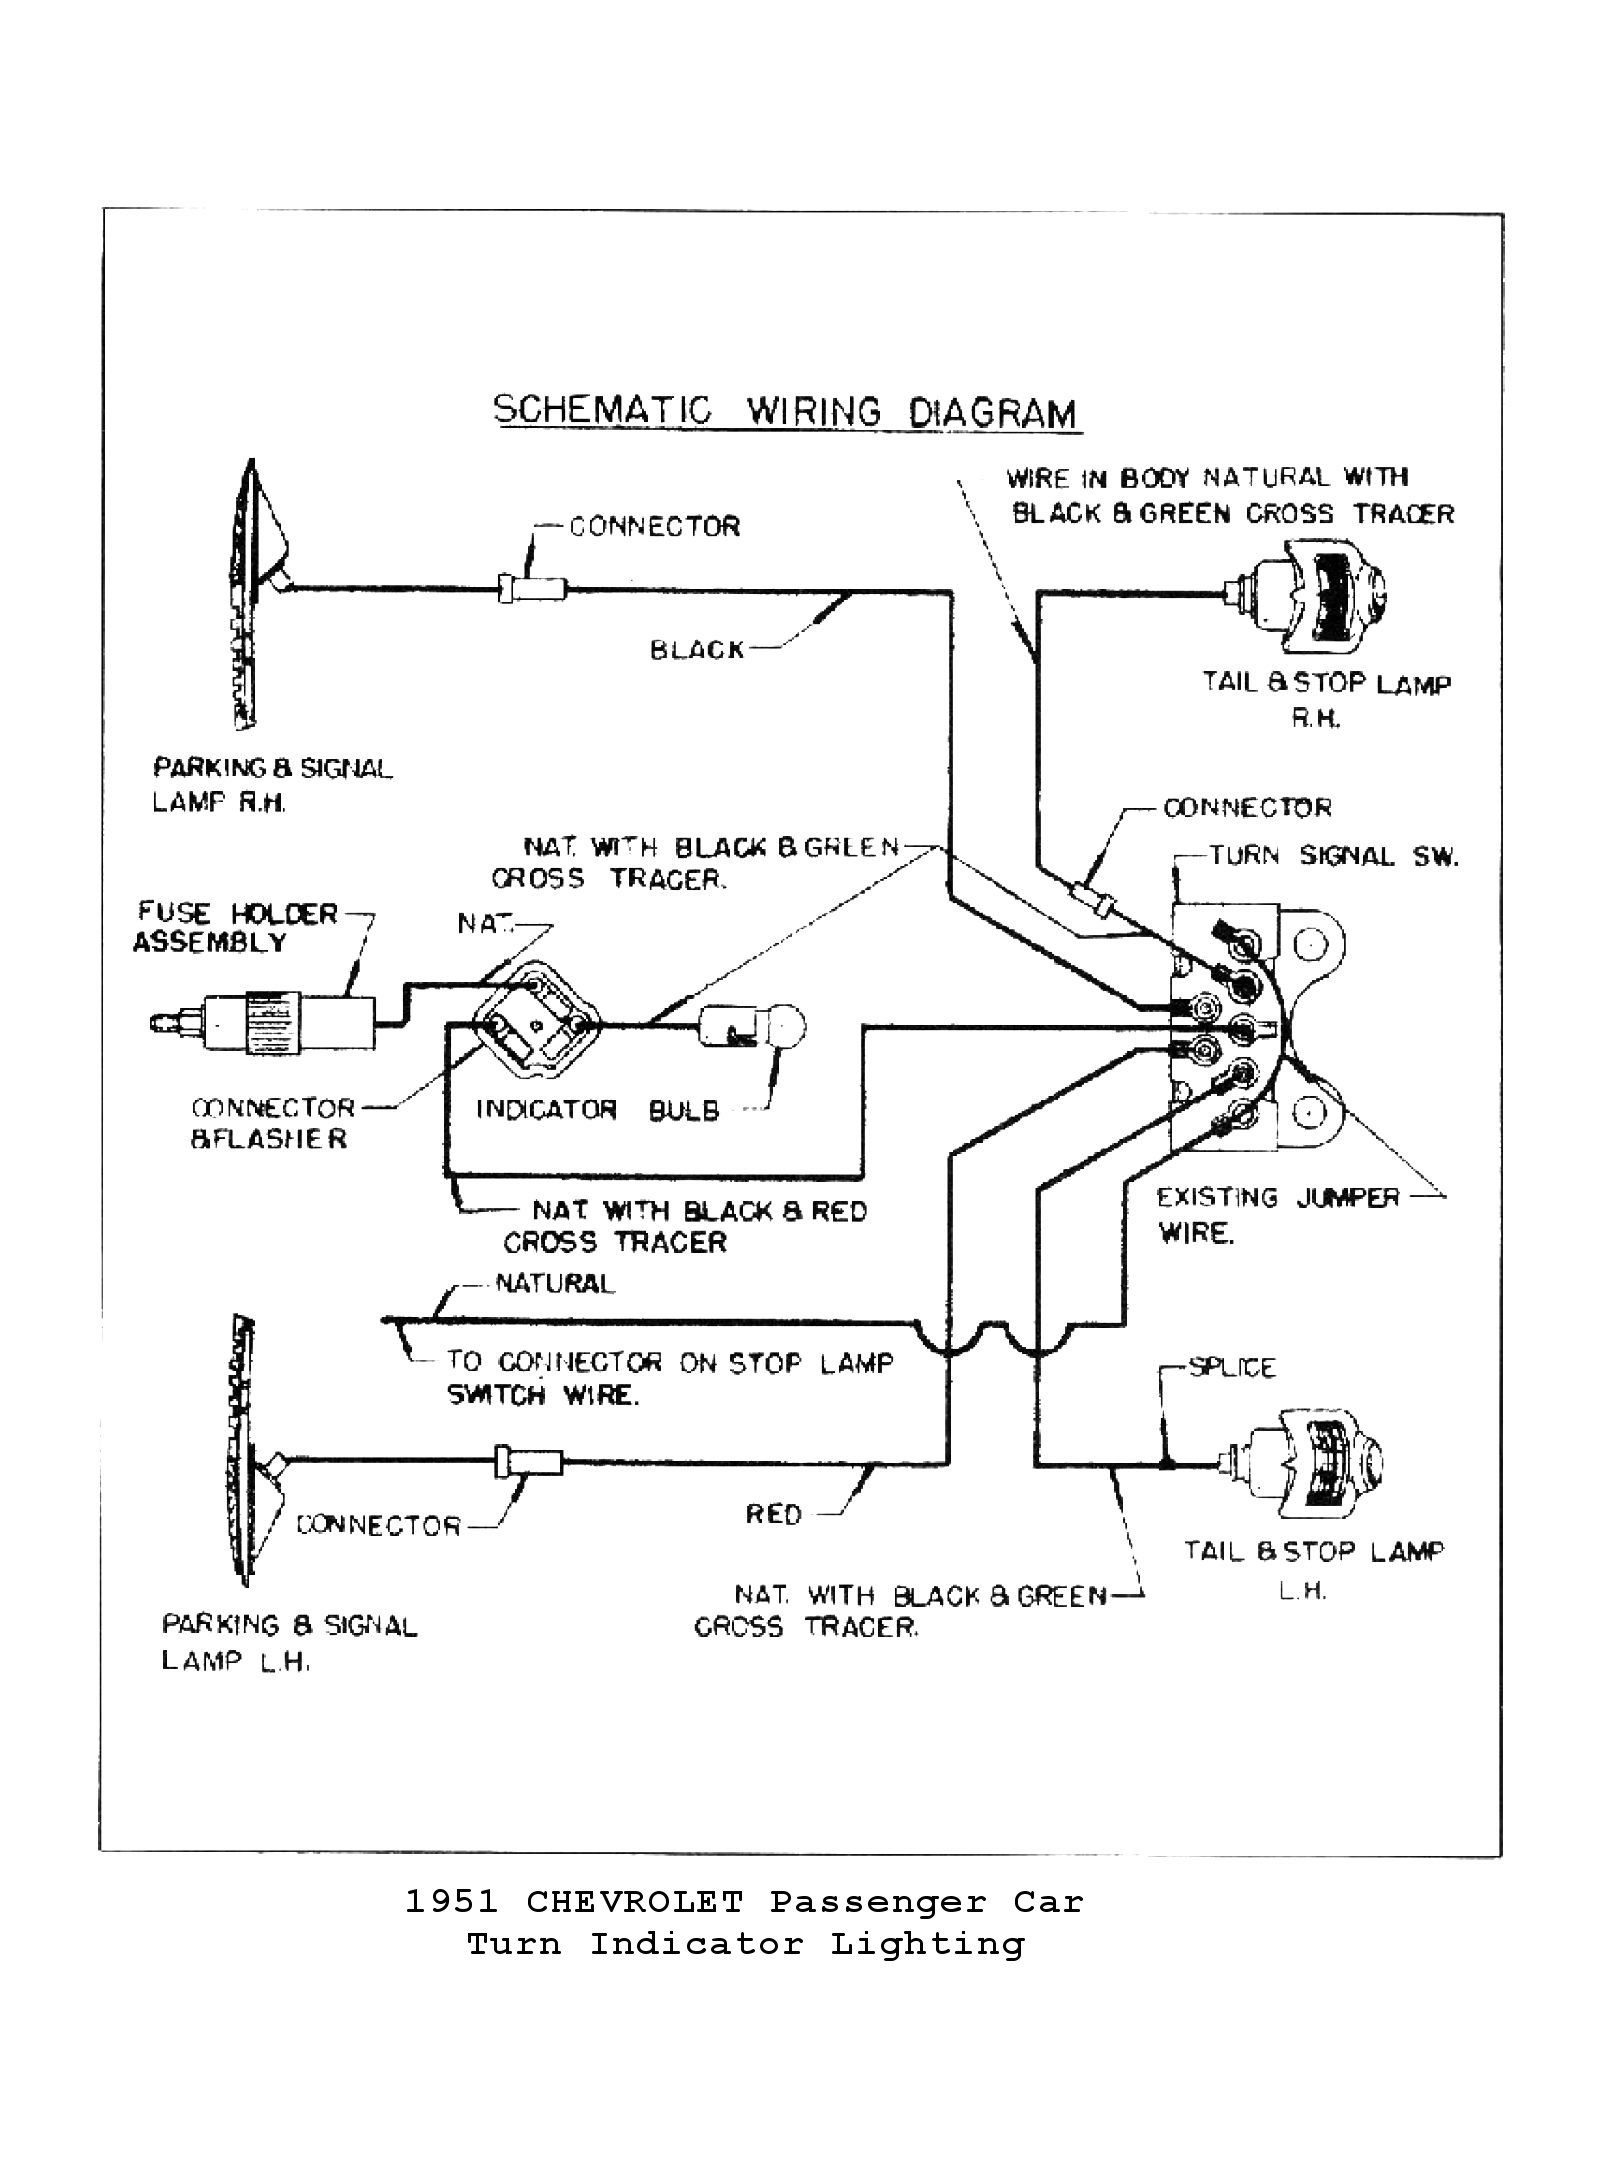 Chevy Wiring Diagrams 1948 Studebaker Wiring Diagram 1948 Chevy Wiring  Diagram